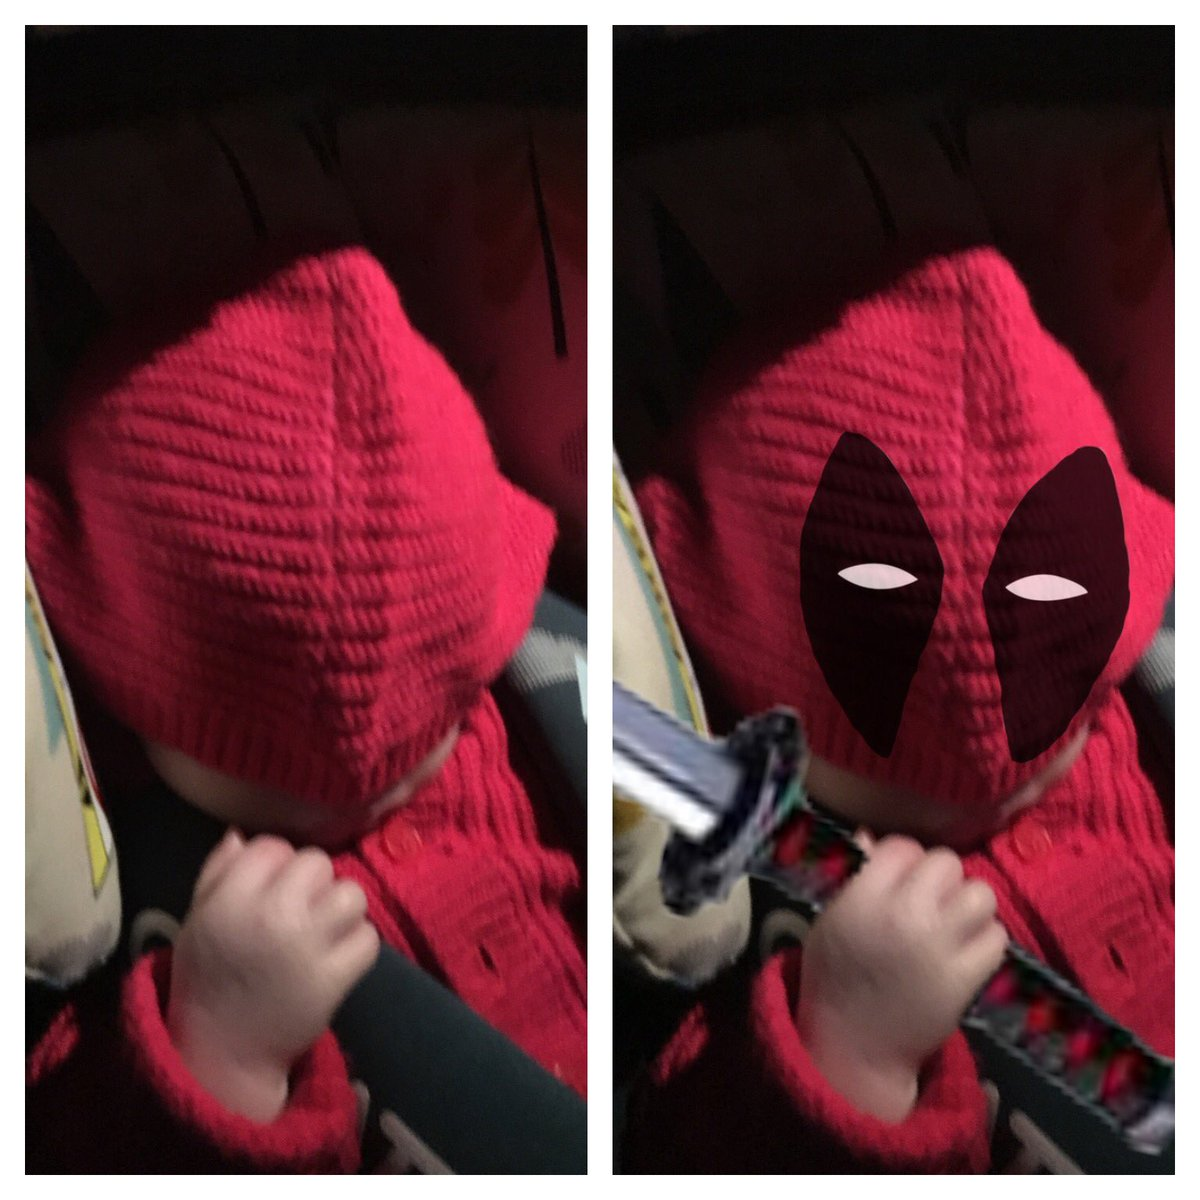 From carpool to Deadpool. At 12 weeks, my baby girl is already a @VancityReynolds fan. She just doesn't know it yet.  #Deadpool #Deadpool2 #Sylvie #Marvelpic.twitter.com/O8QBE2BkPs